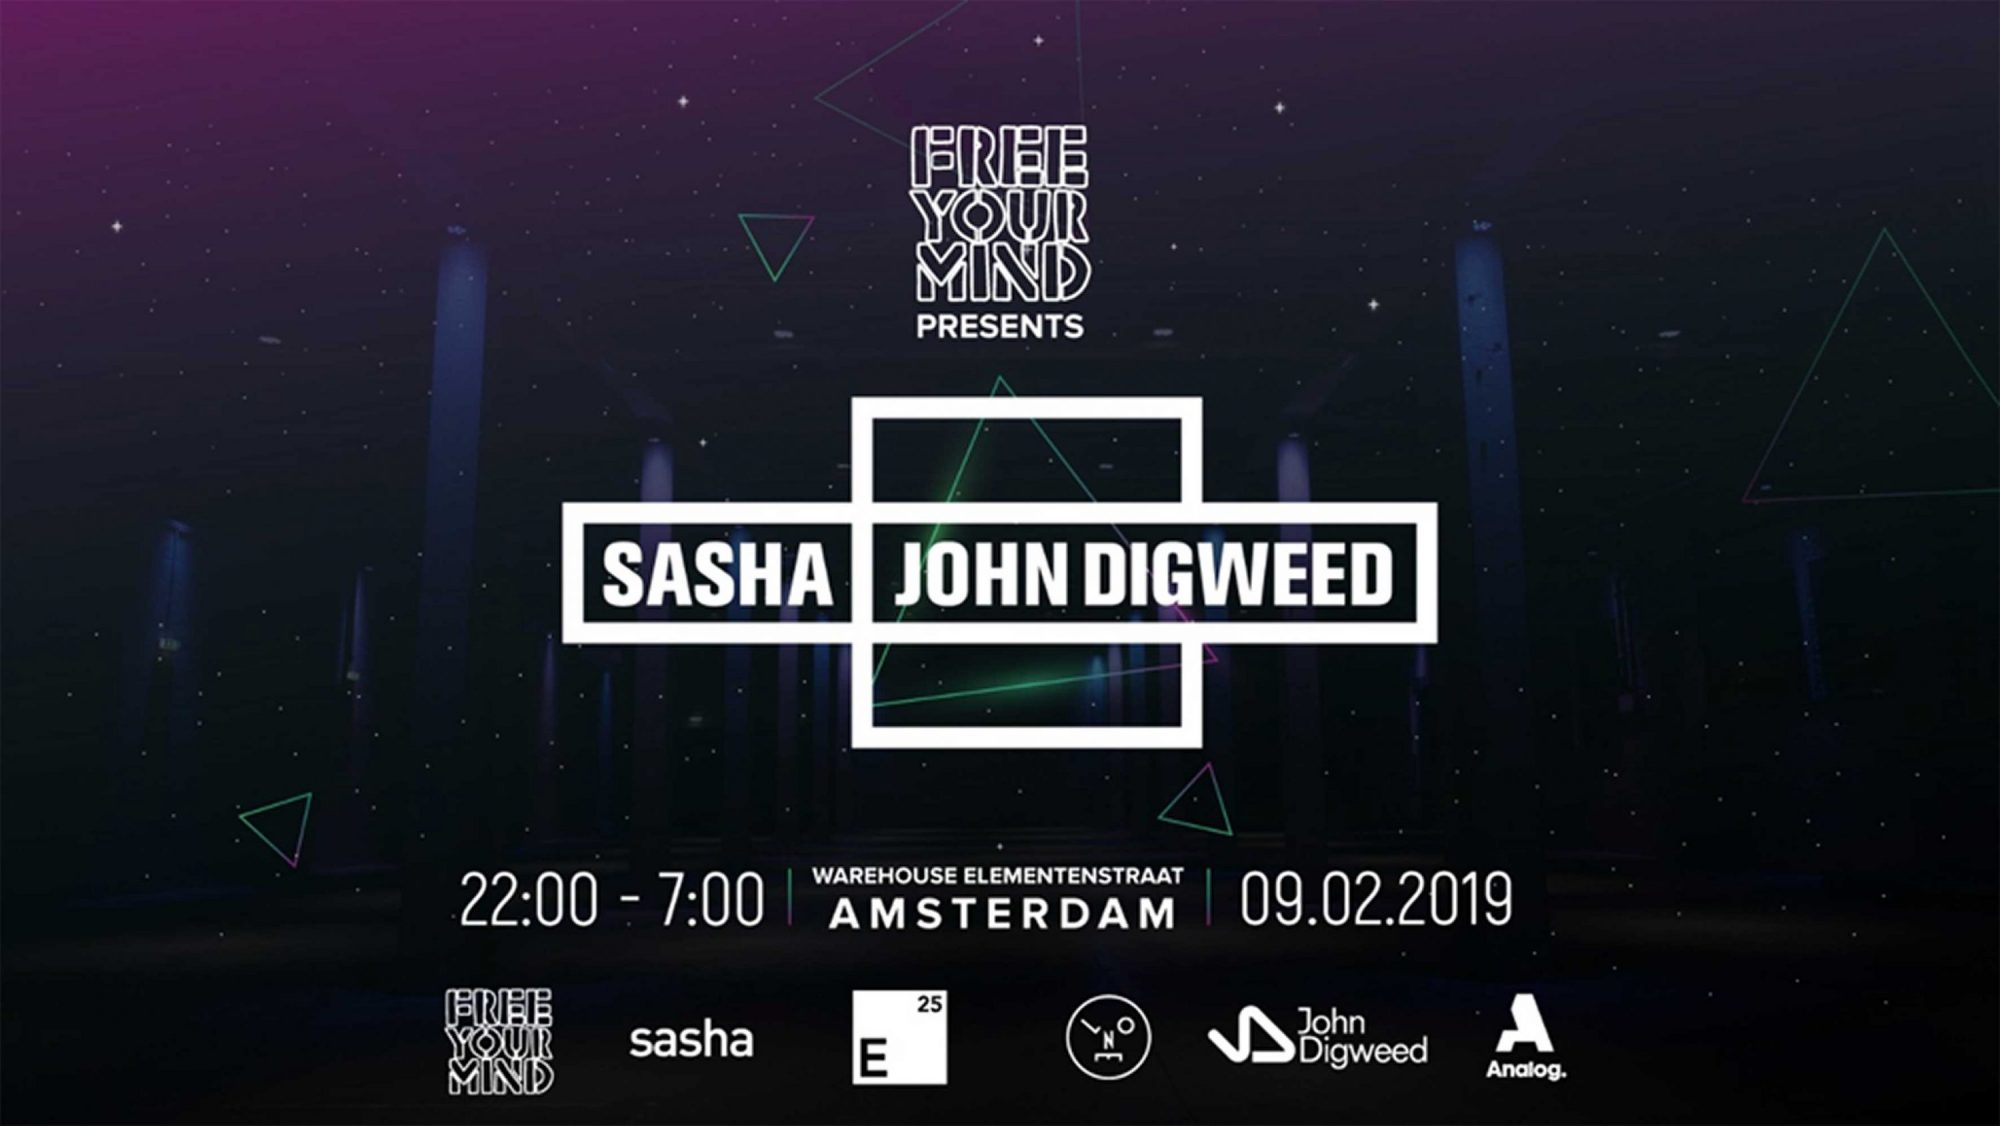 Sasha and John Digweed Free Your Mind